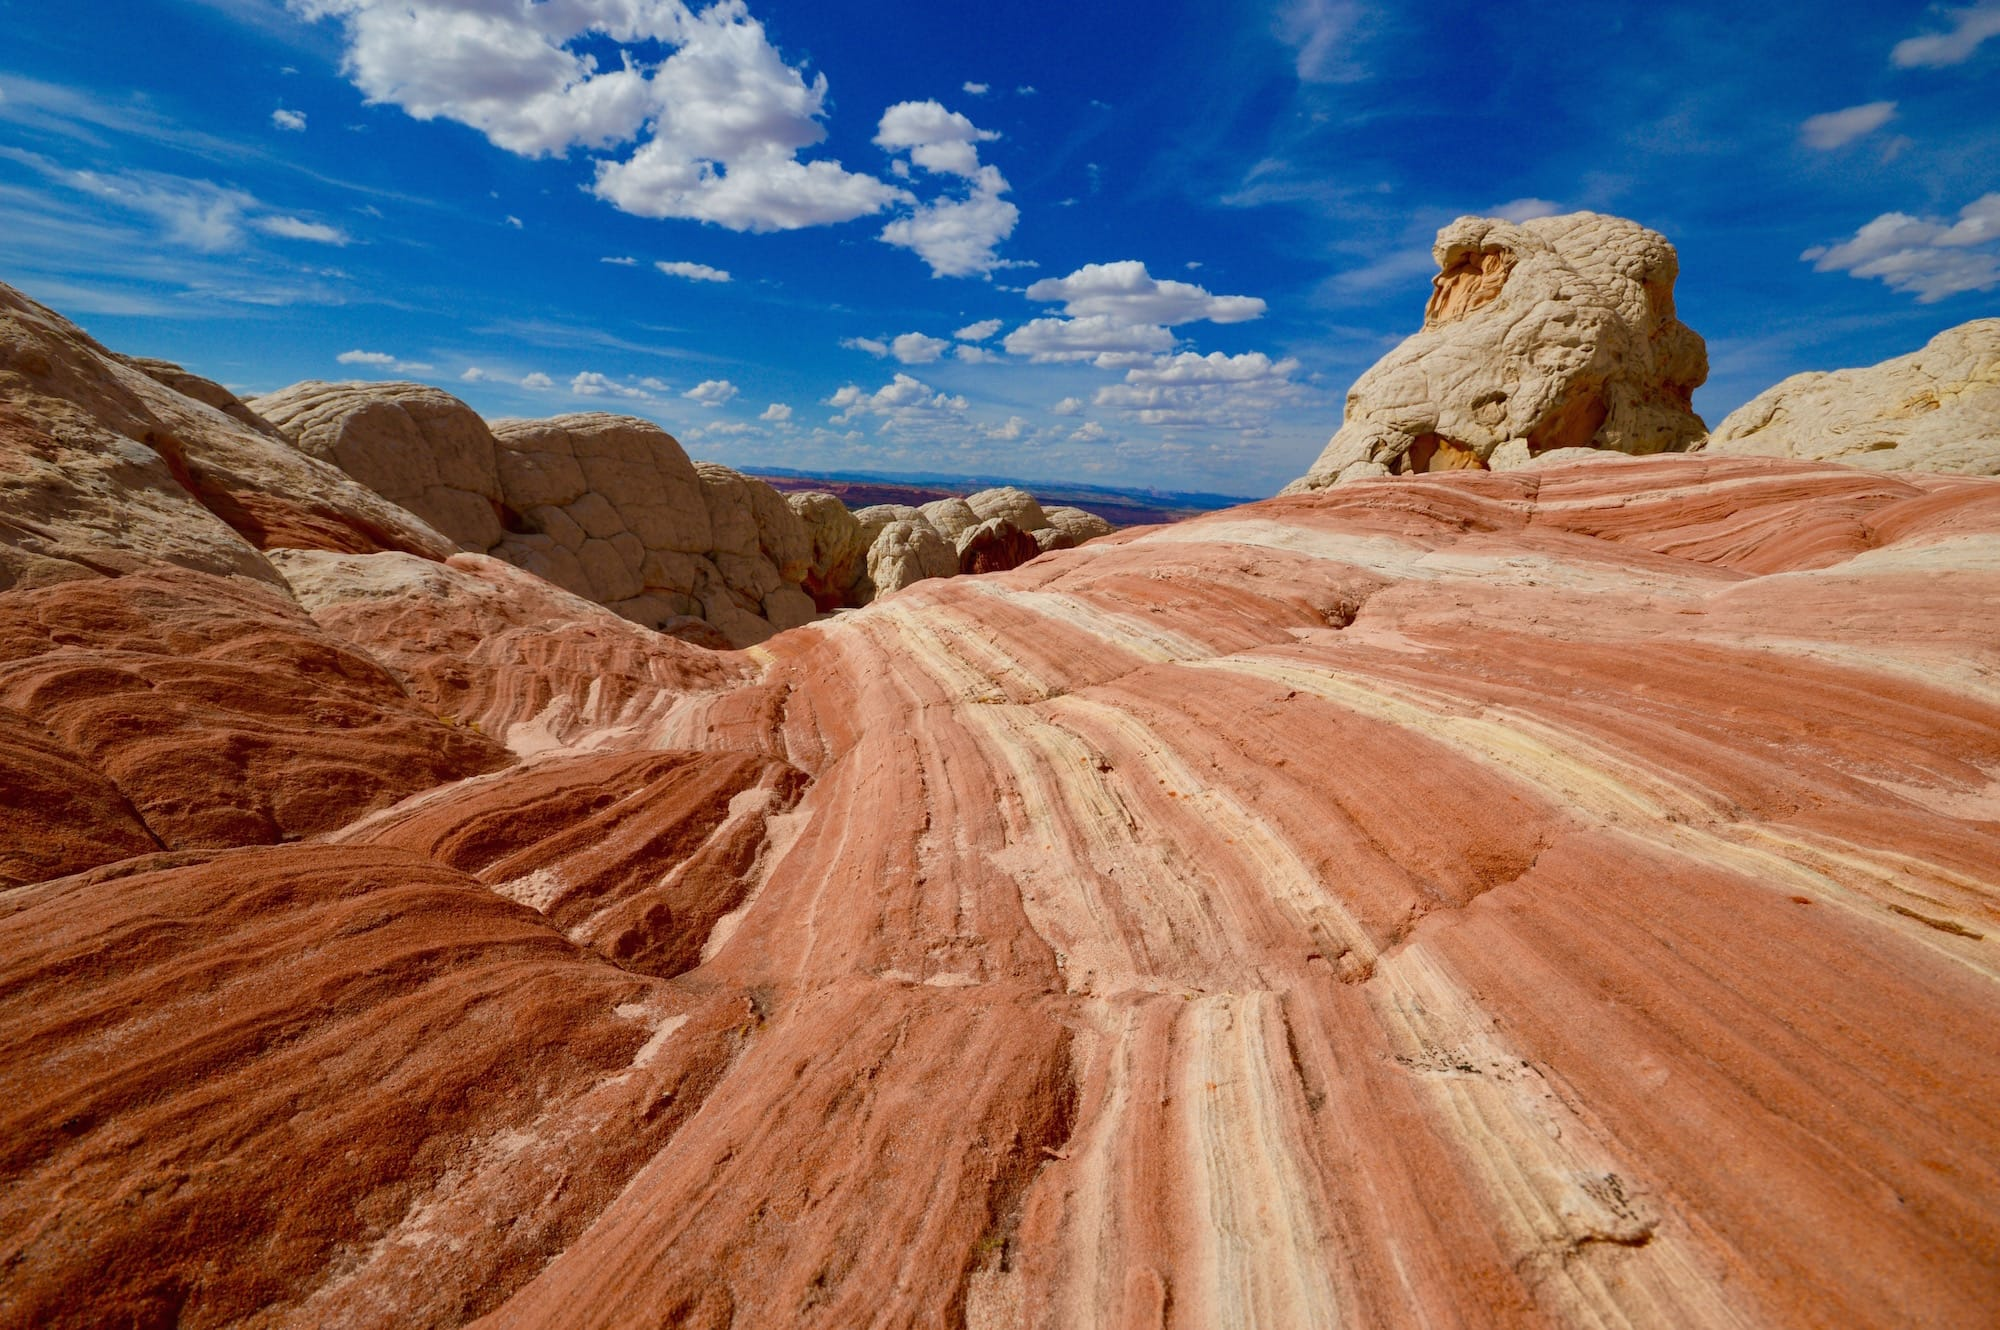 Striped rock with view of Vermilion Cliffs National Monument